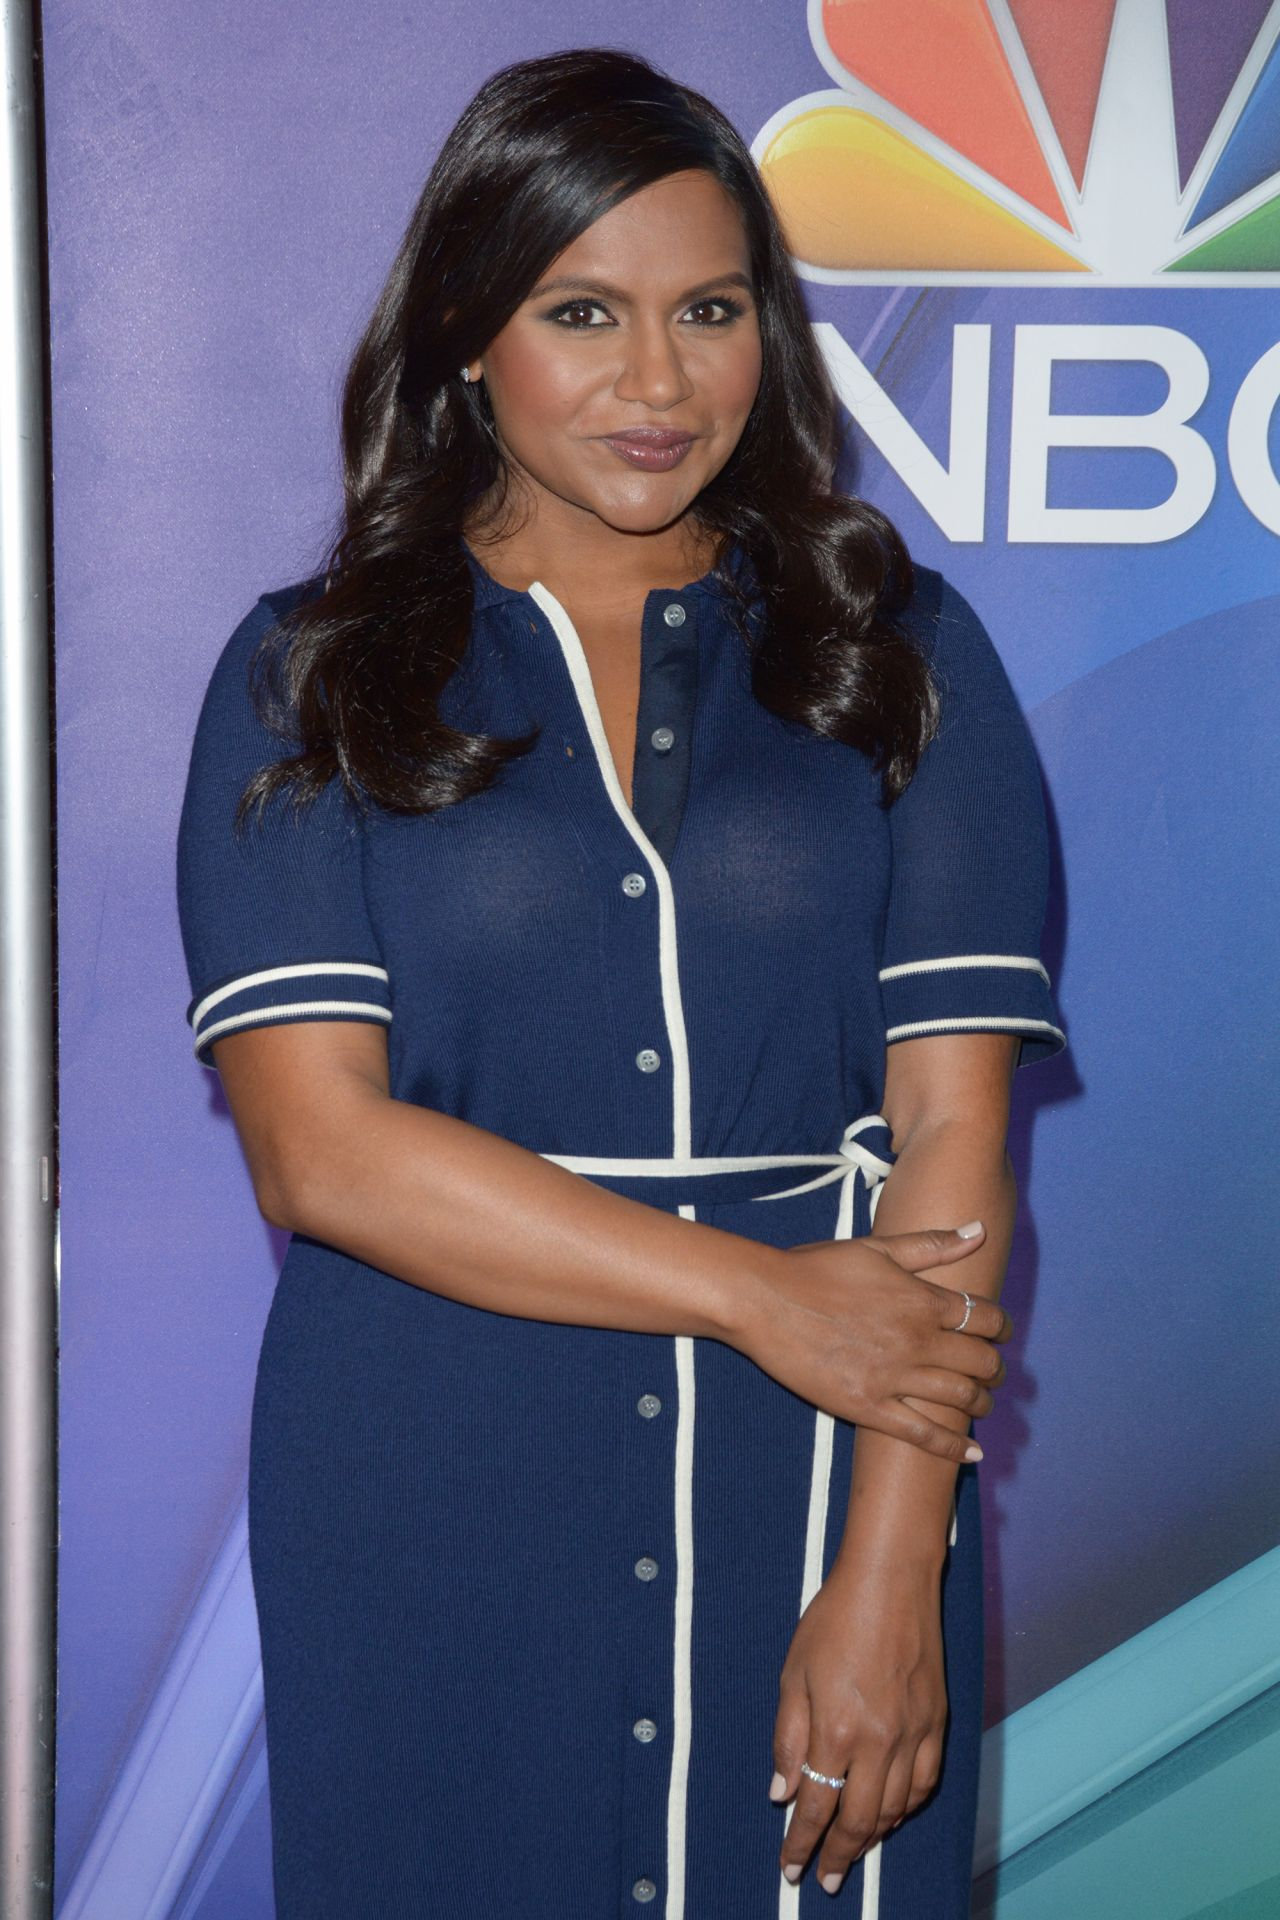 Mindy Kaling Nbc Mid Season Press Day In New York 03 08 2018